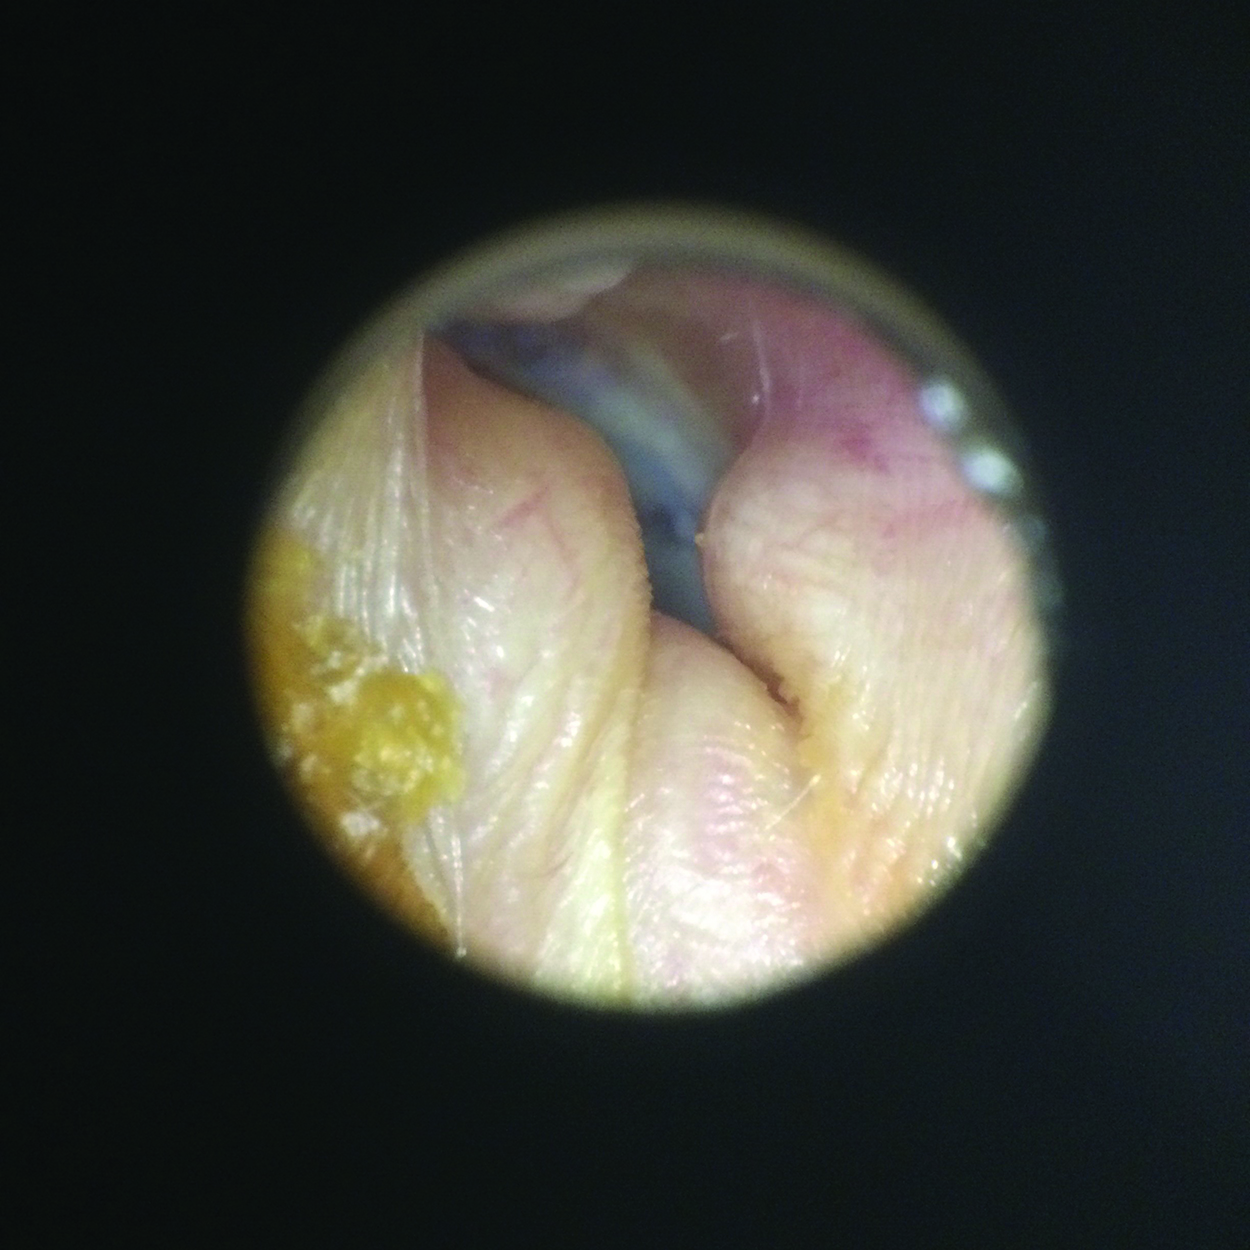 Pictures Of Growths On Outer Ear